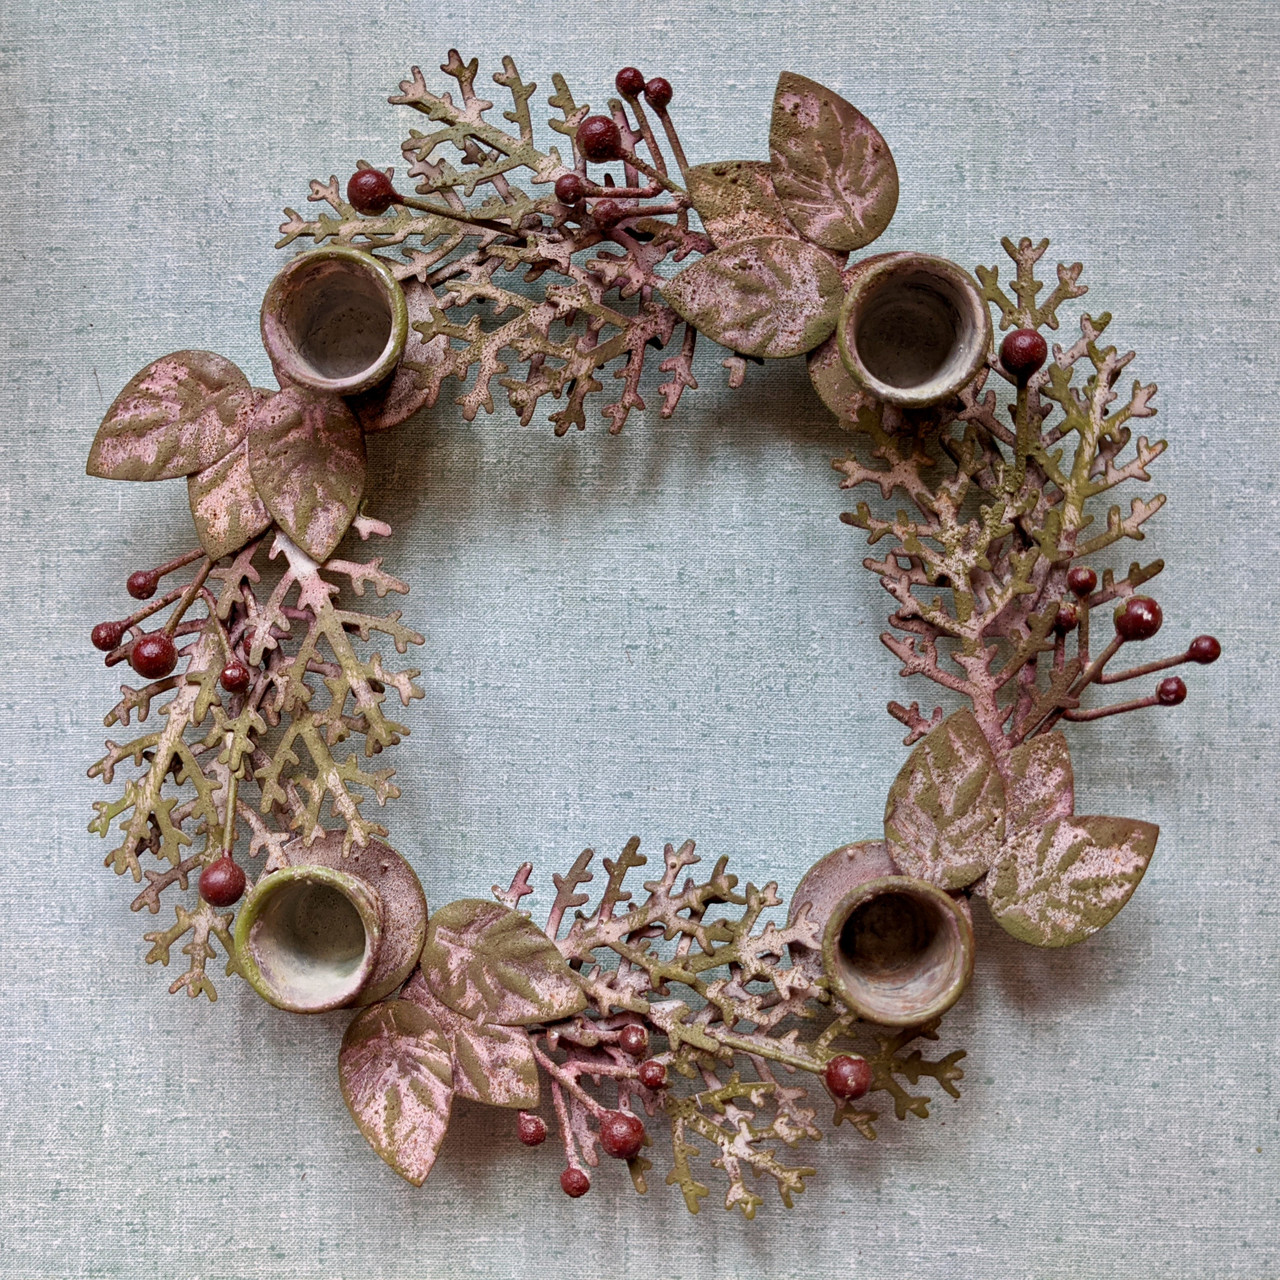 Round Metal Wreath Taper Holder with Leaves and Berries - B